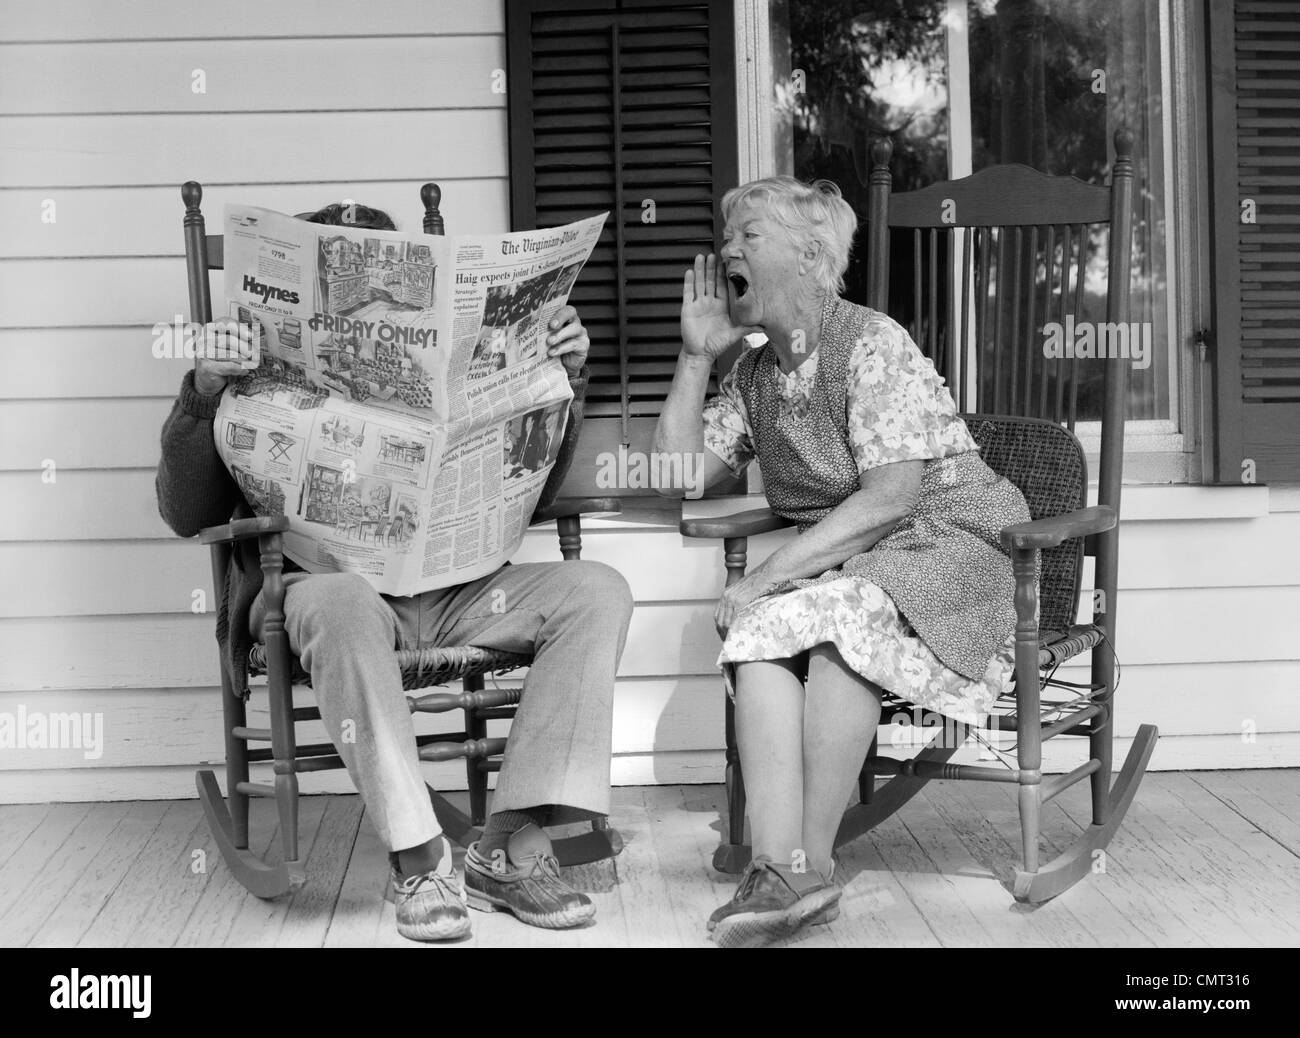 1970s ELDERLY COUPLE IN ROCKING CHAIRS ON PORCH MAN READING NEWSPAPER WHILE WIFE HOLLERS AT HIM Stock Photo